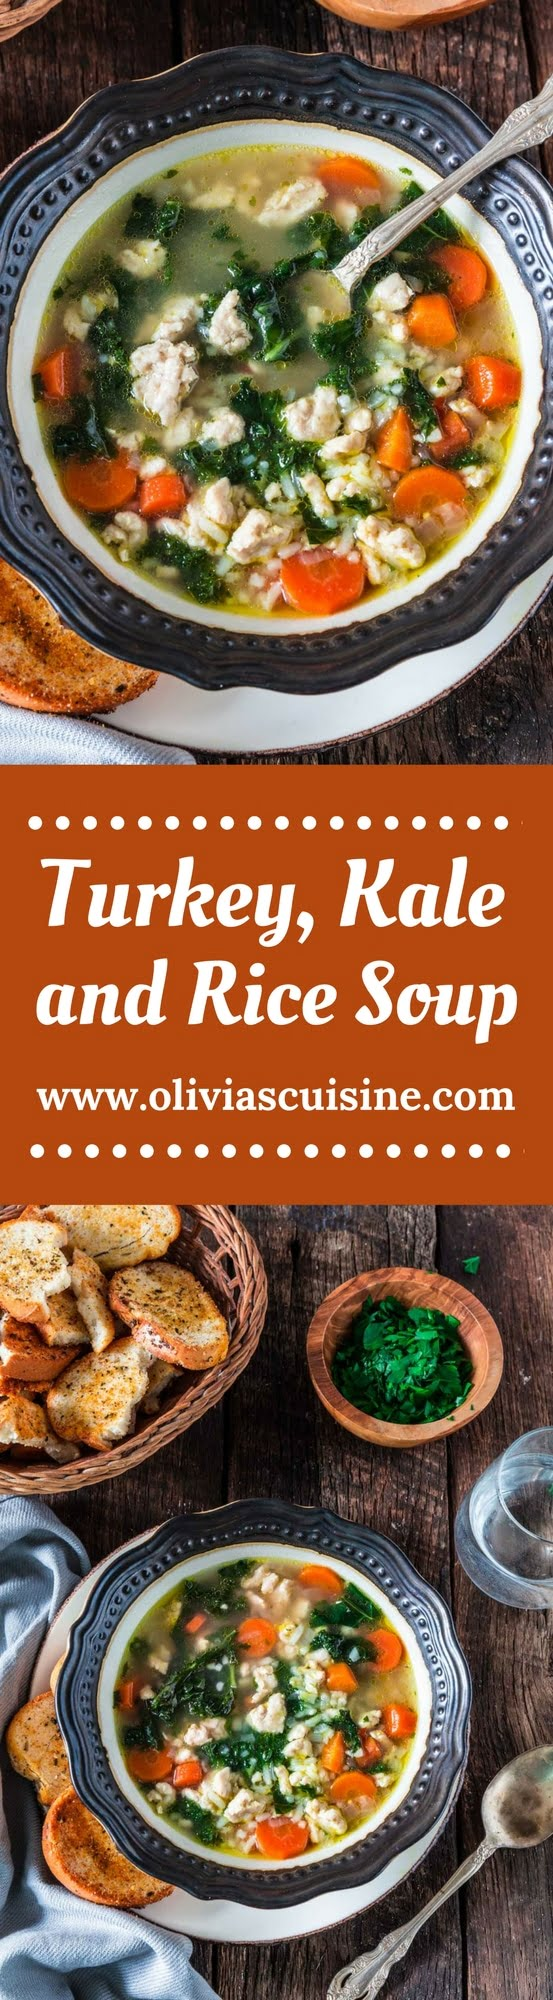 "Turkey, Kale and Rice Soup | www.oliviascuisine.com | Nothing warms you up like a cozy bowl of Turkey, Kale and Rice Soup! Loaded with nutrients and low in fat, so you can stay true to your ""eating healthy"" New Year resolutions. (Sponsored by @JennieO.)"